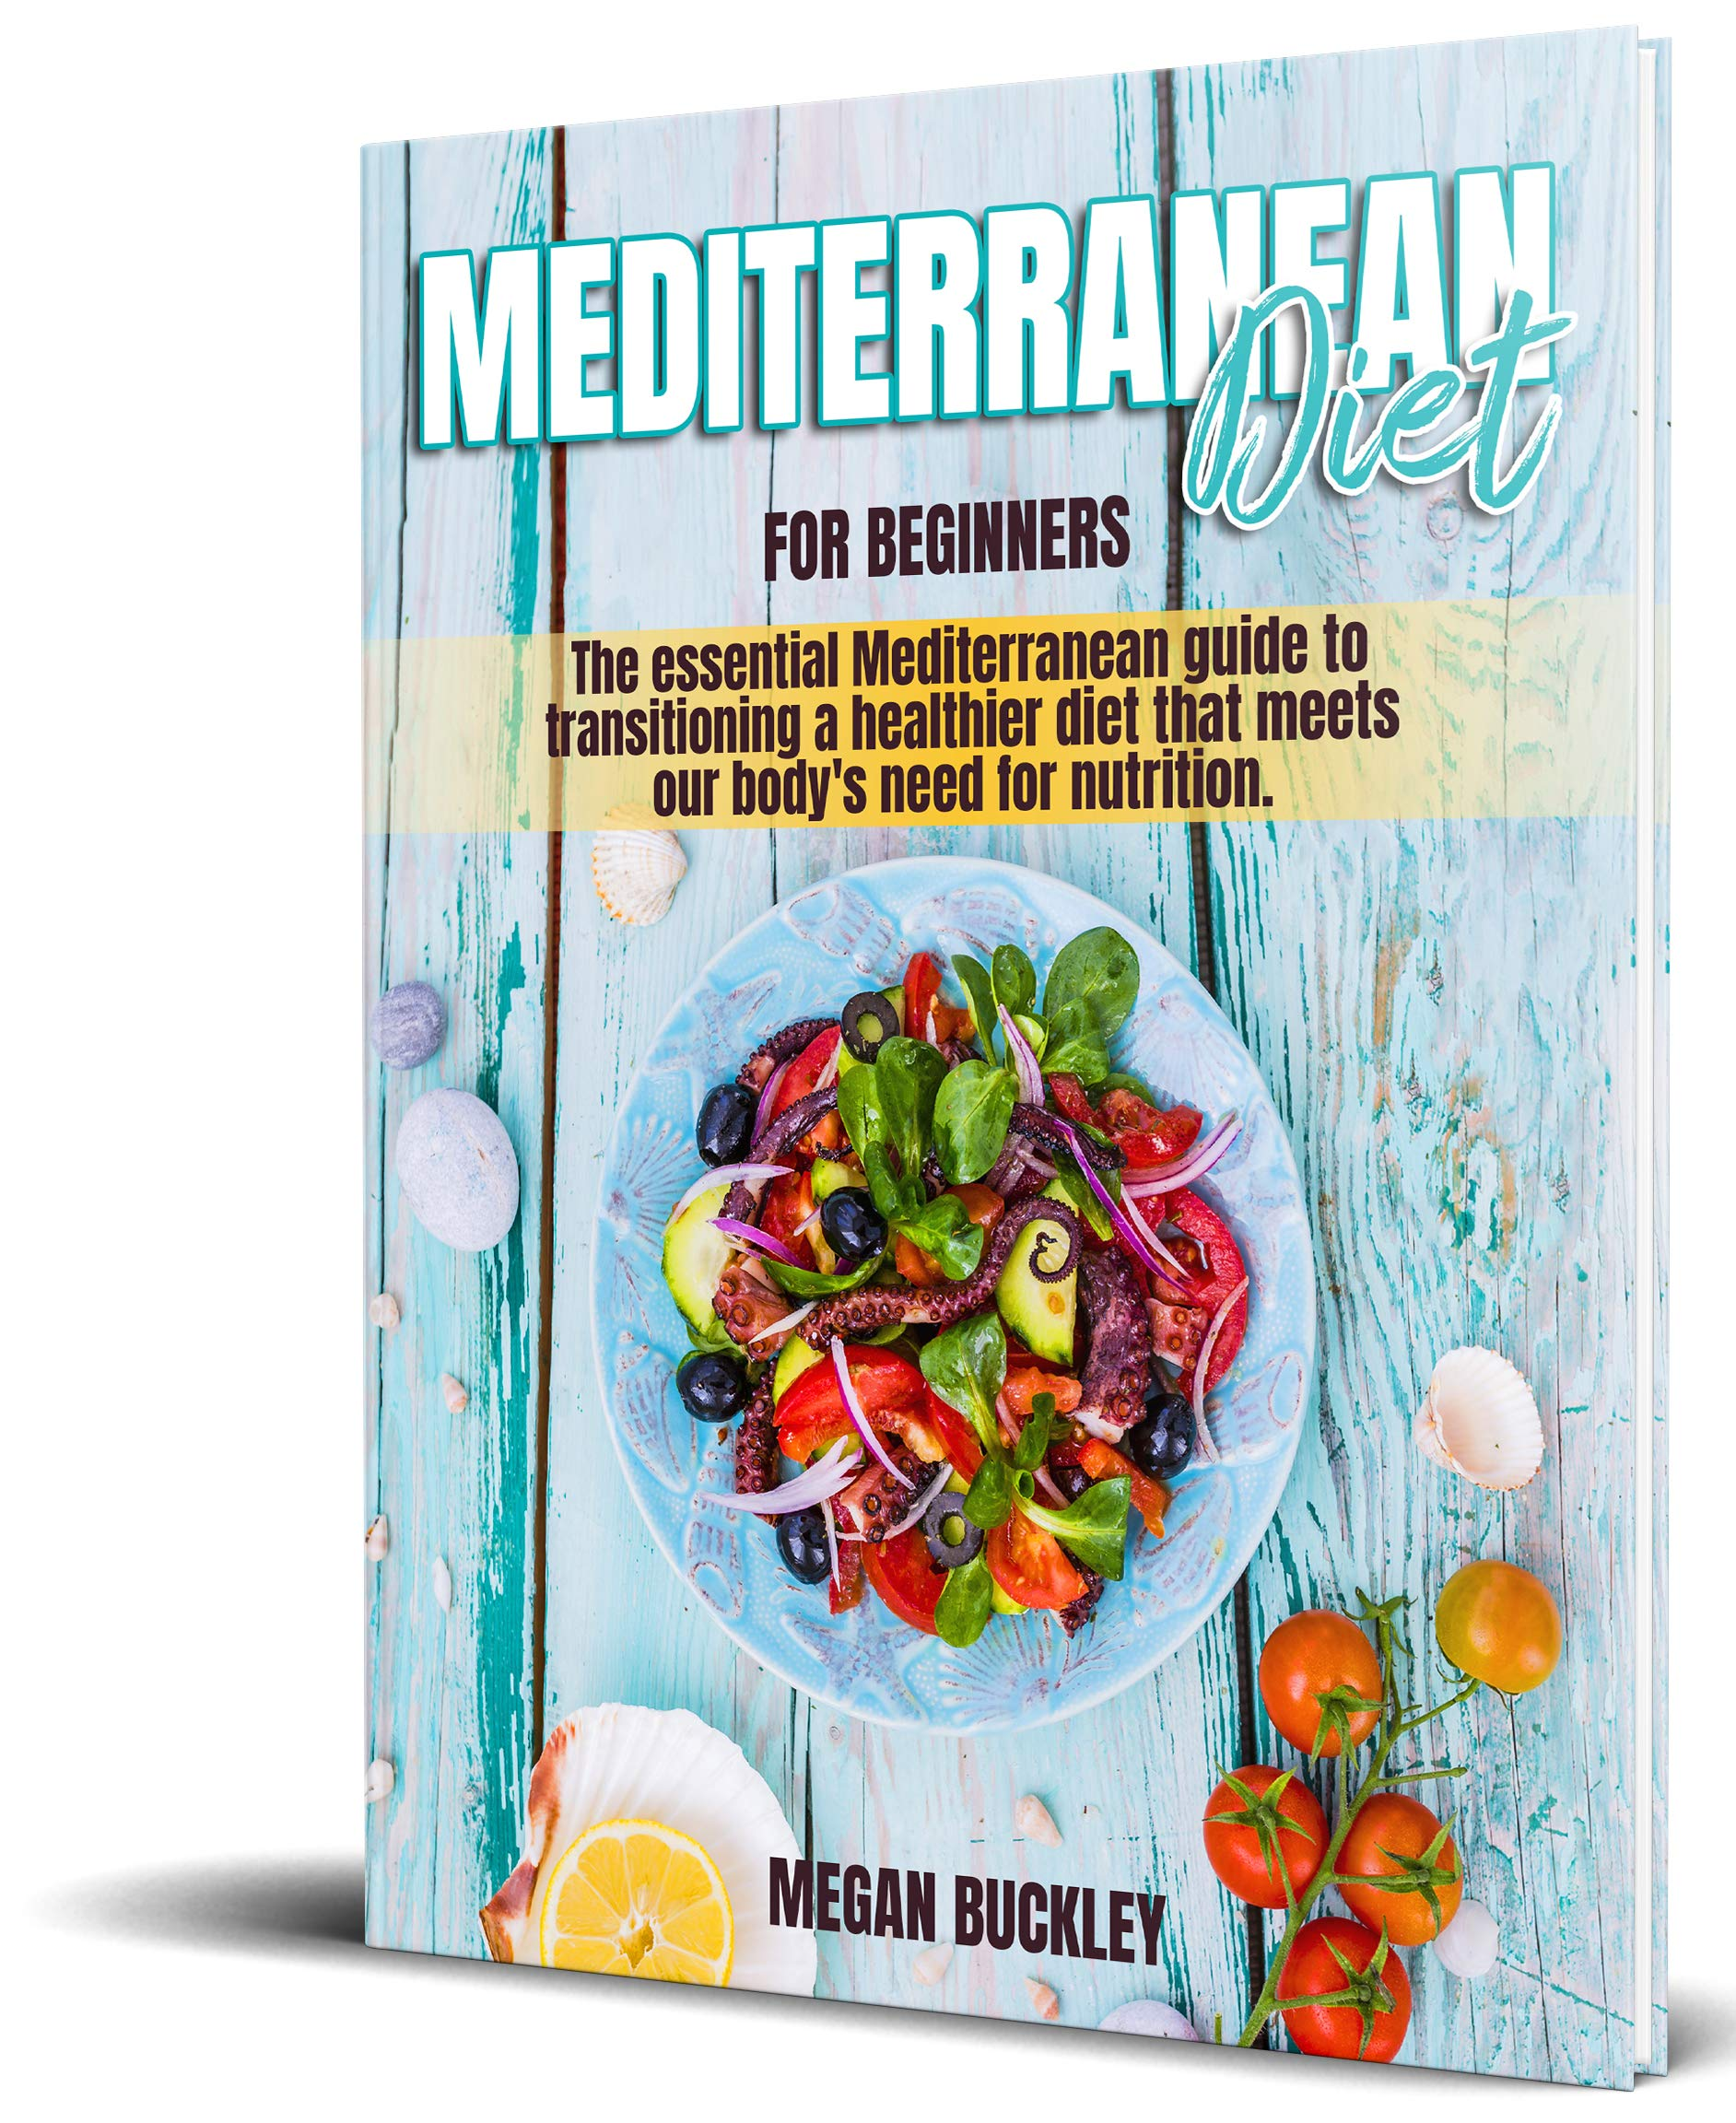 Mediterranean Diet For Beginners: The Essential Mediterranean Guide to Transitioning a Healthier Diet that Meets our Body's Need for Nutrition